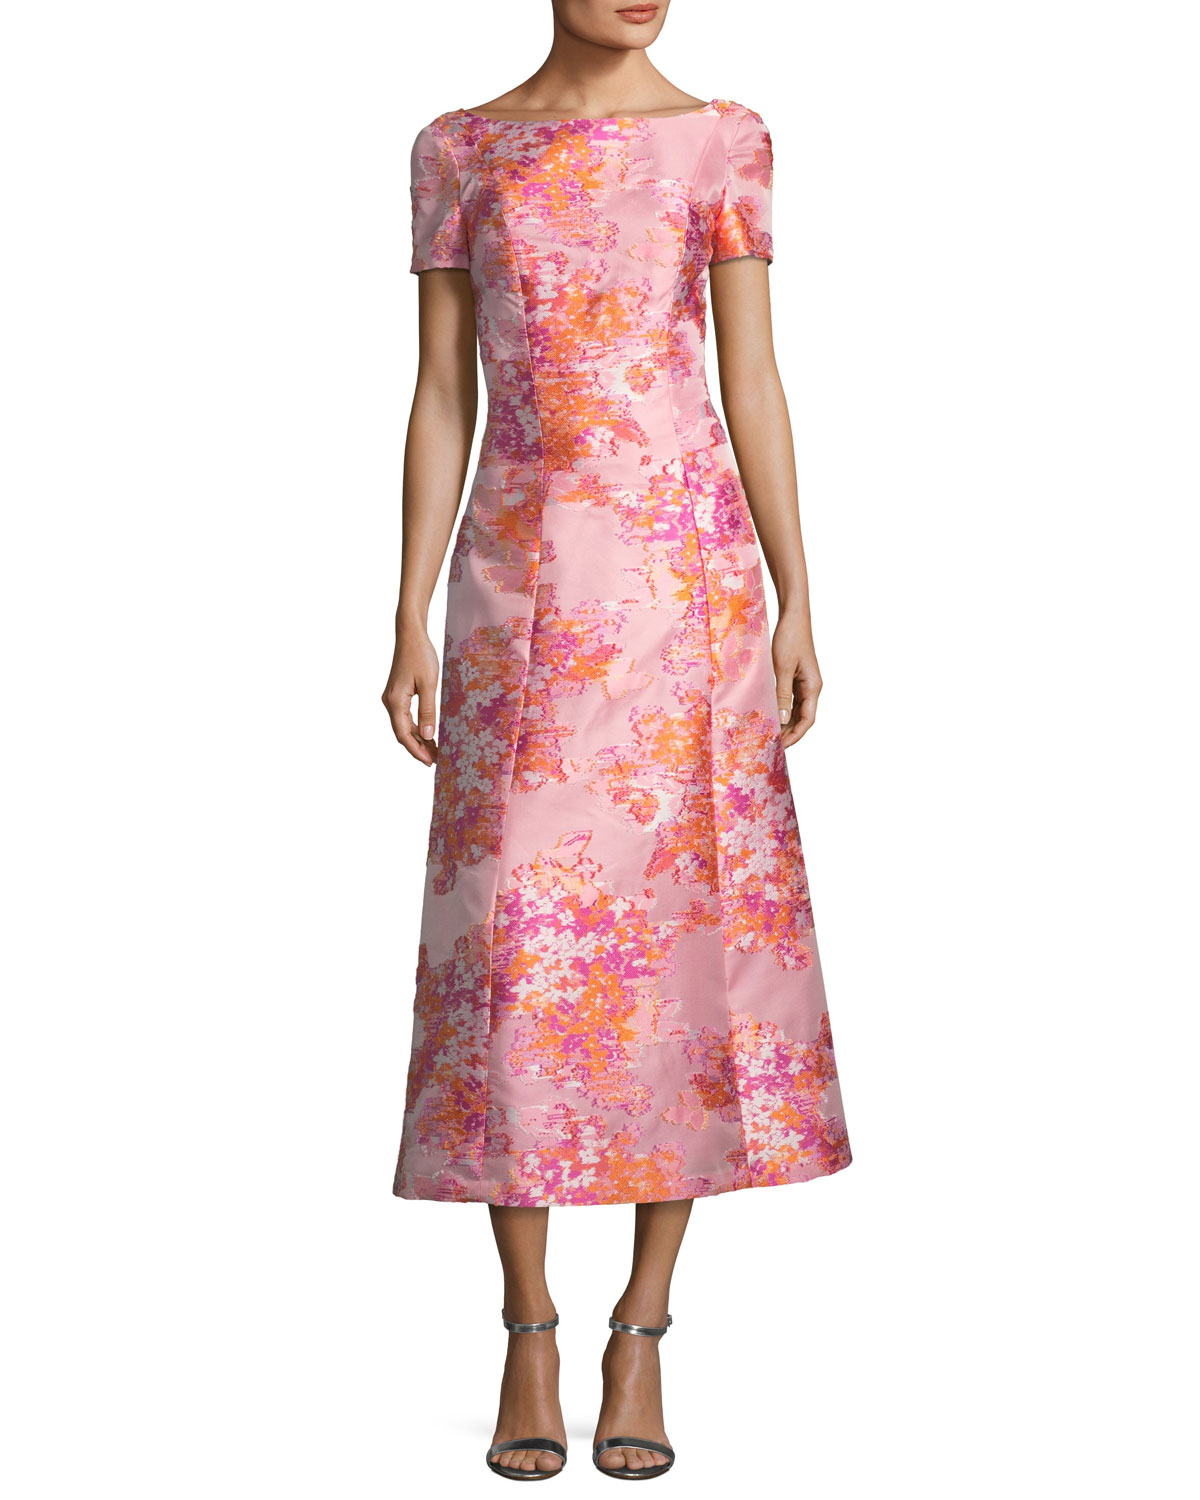 Washed Bouquet Jacquard Cocktail Dress